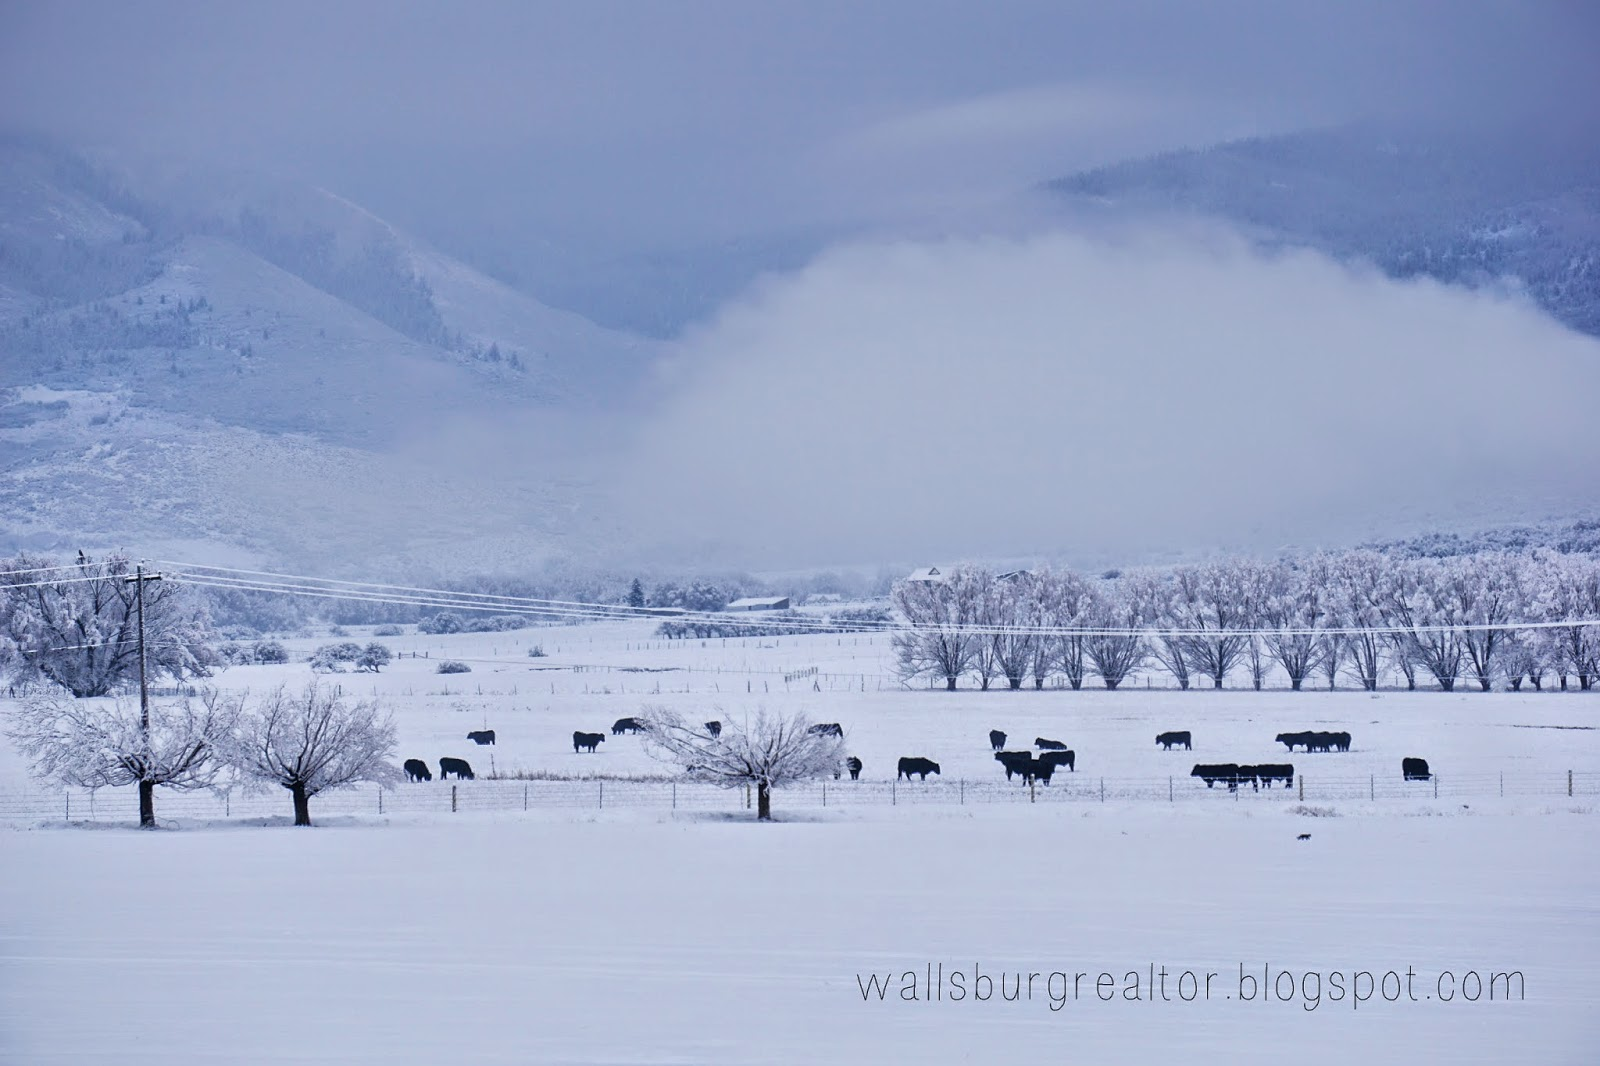 Snow Covered Fields in Wallsburg